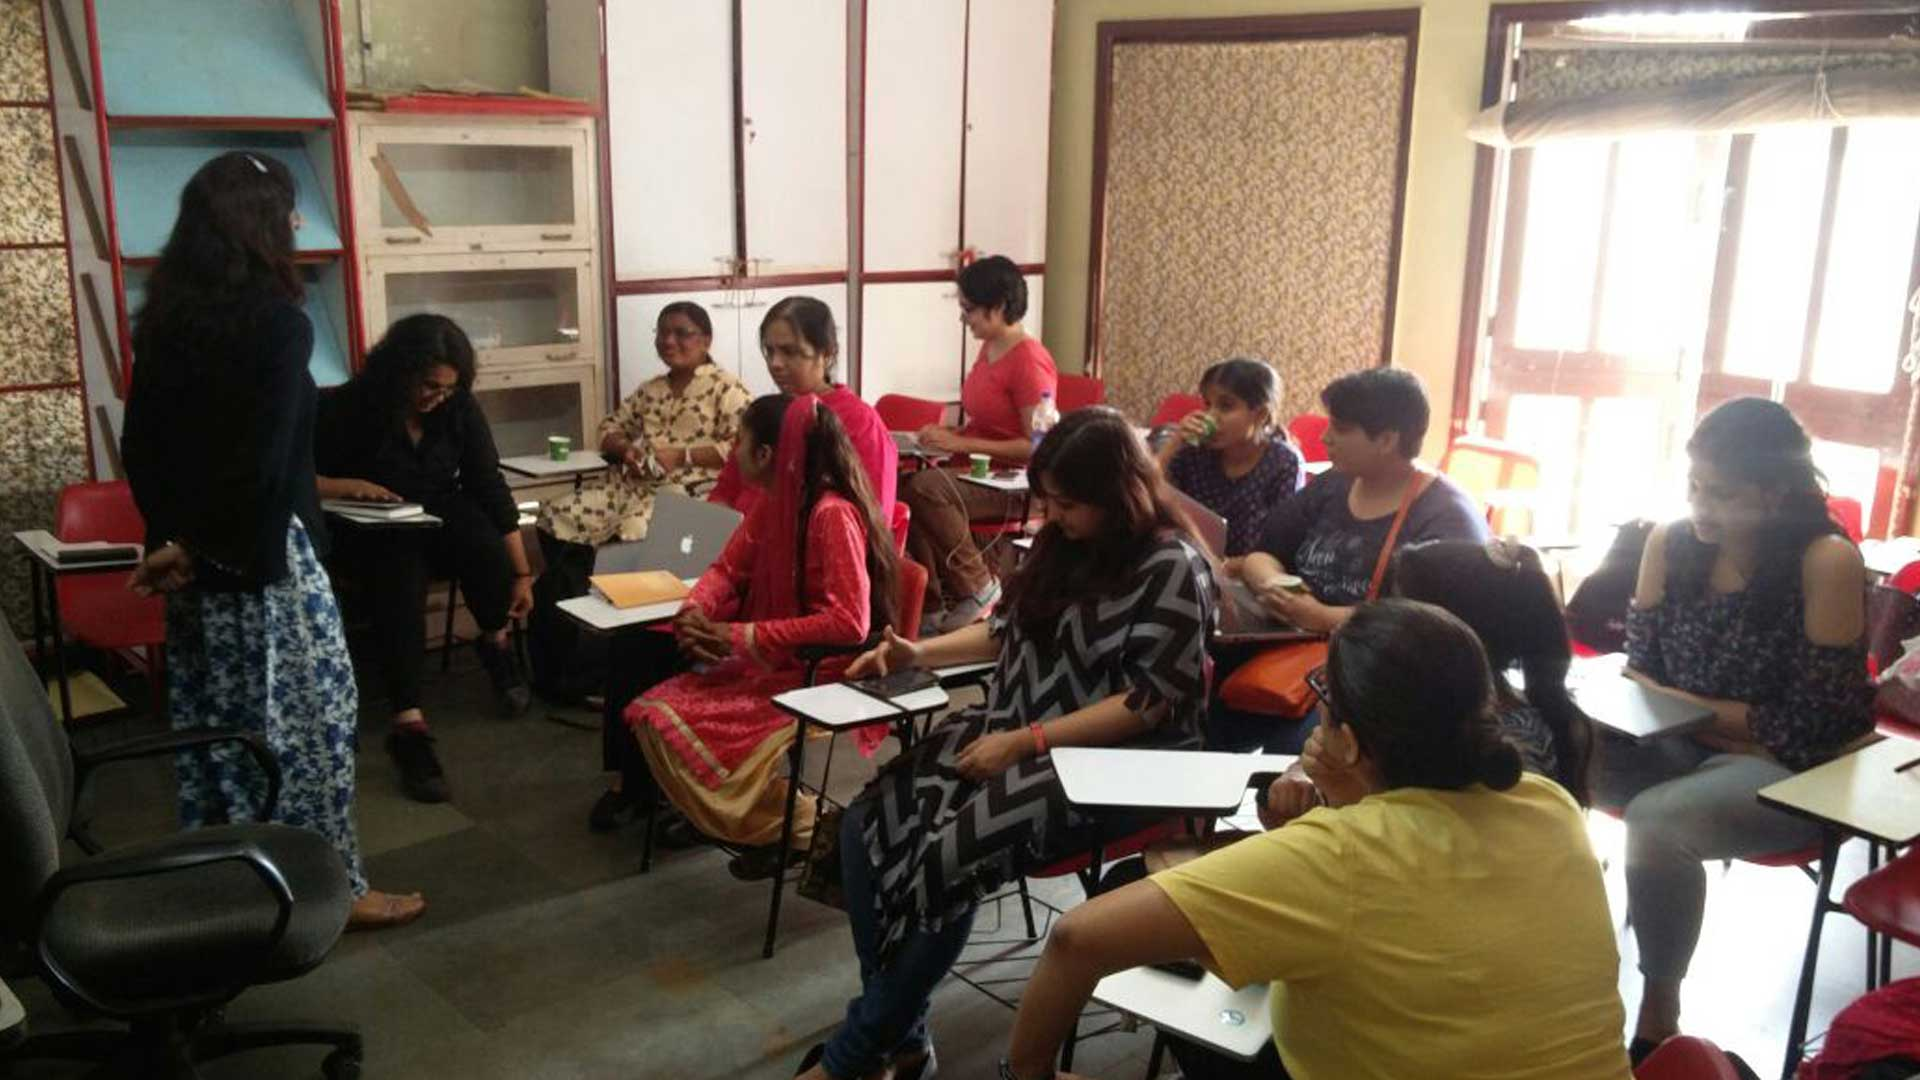 It is a classroom setting, with red chairs which have attached side tables. Around 12 women sitting in the room, facing the front. One woman in a black kurta and white and blue printed pyjamas is addressing the room and everyone else is listening to her. One blind woman is drinking from a paper cup. One woman in a pink kurta is looking down and has her laptop open. One woman sitting in the front row is looking into her phone. There is sunlight coming in from the back of the room and there are cupboards on the right hand wall.